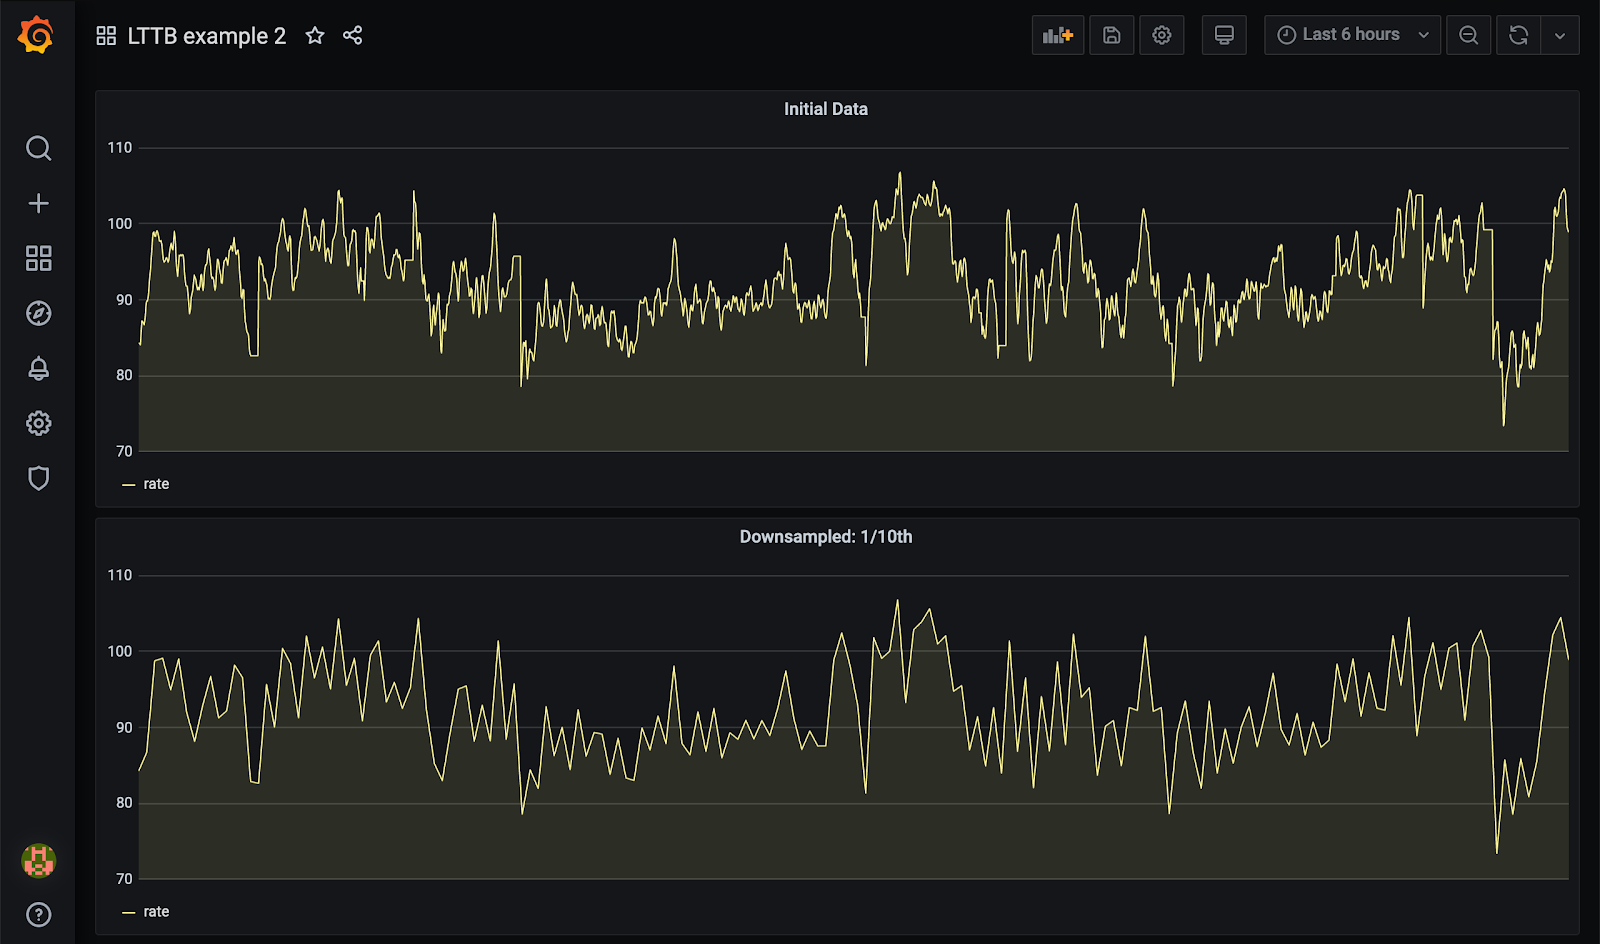 Grafana dashboard UI, showing initial and downsampled data